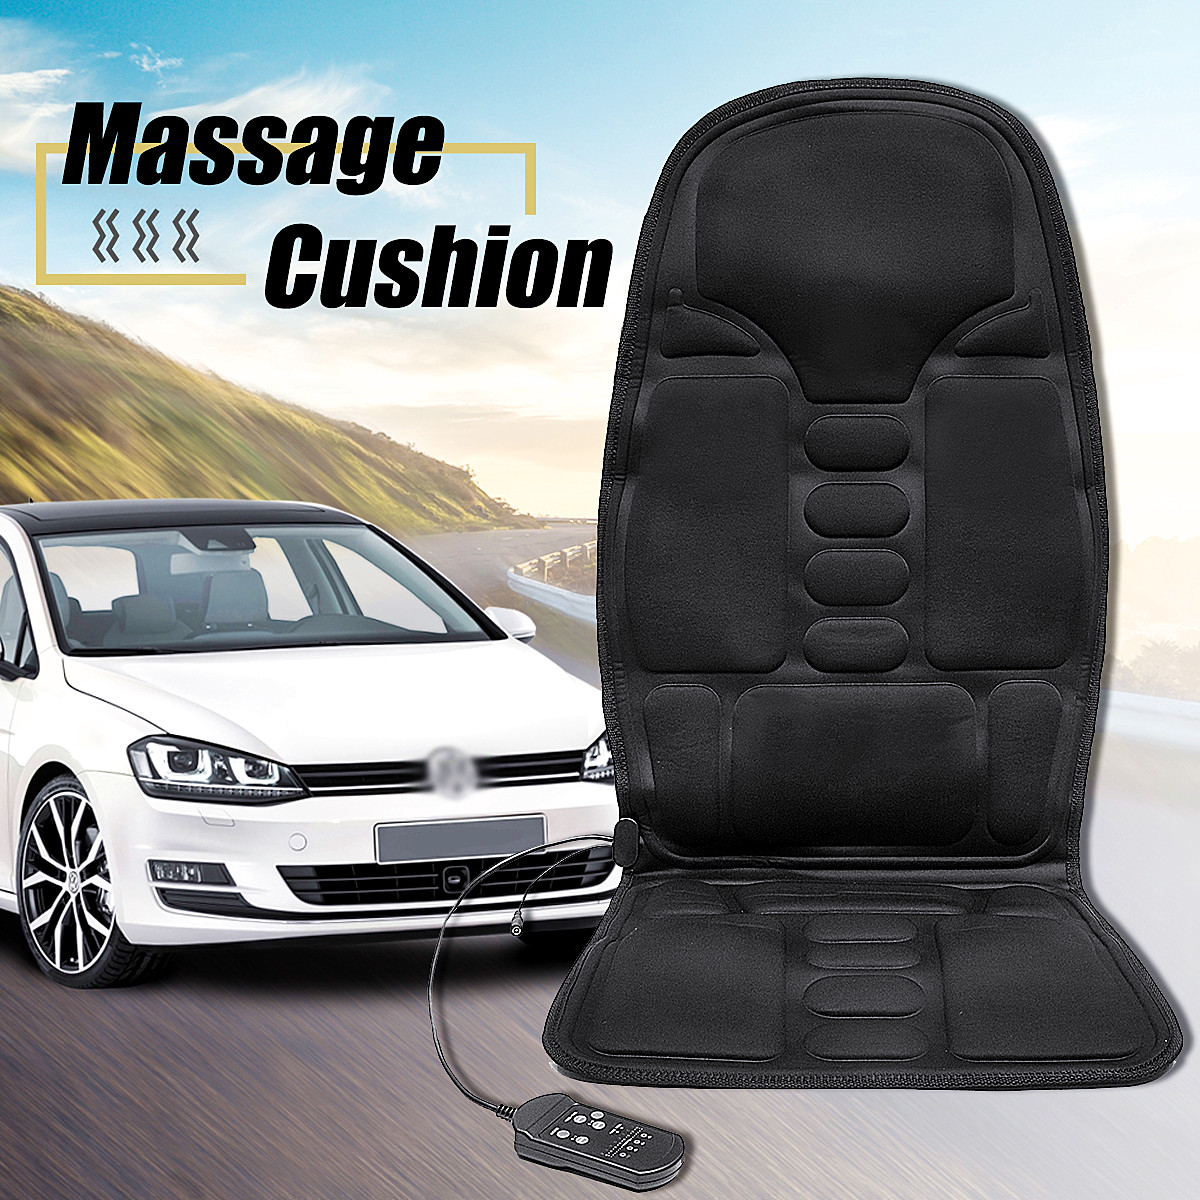 1pcs Electric Mulifunction Heated Massage Car Home Office Seat Cushion Car Seat Chair Massager Lumbar Back Neck Pad Relaxation1pcs Electric Mulifunction Heated Massage Car Home Office Seat Cushion Car Seat Chair Massager Lumbar Back Neck Pad Relaxation